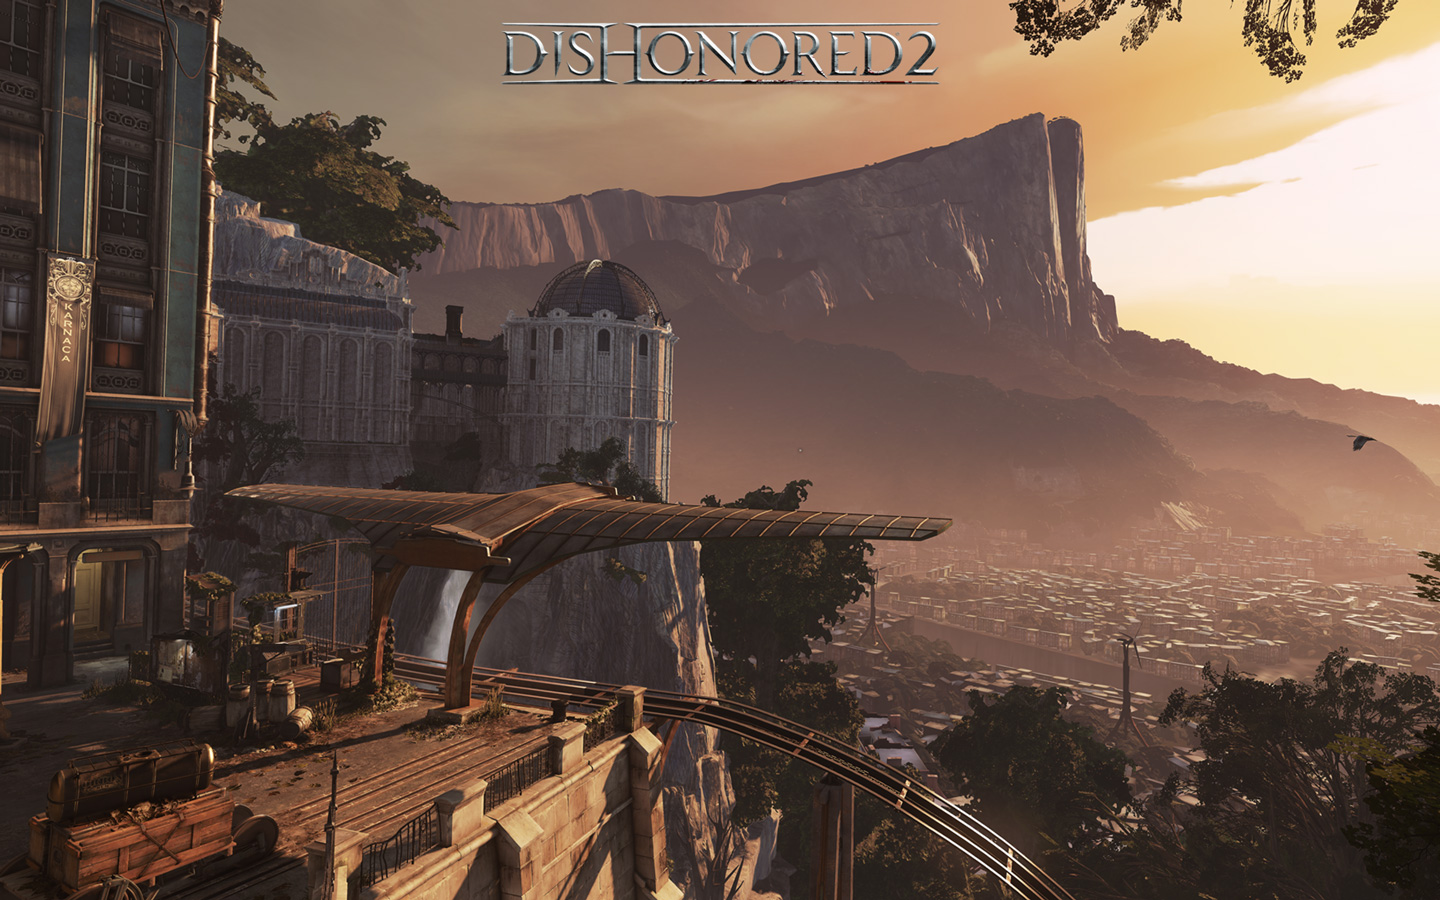 Free Dishonored 2 Wallpaper in 1440x900